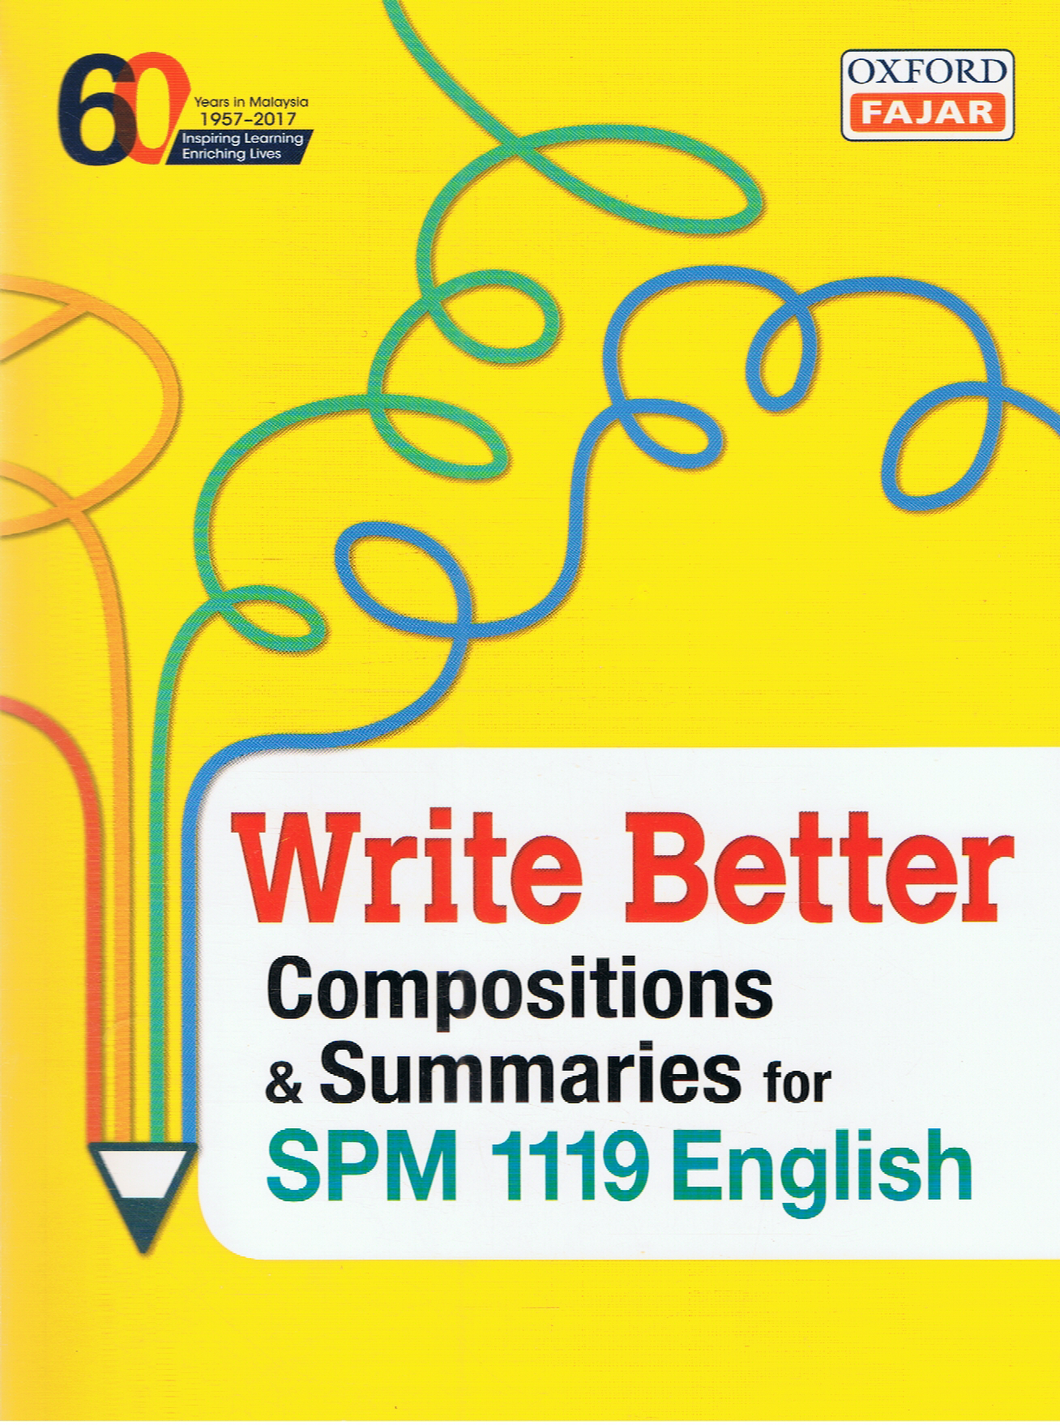 Write Better Compositions & Summaries For SPM 1119 English